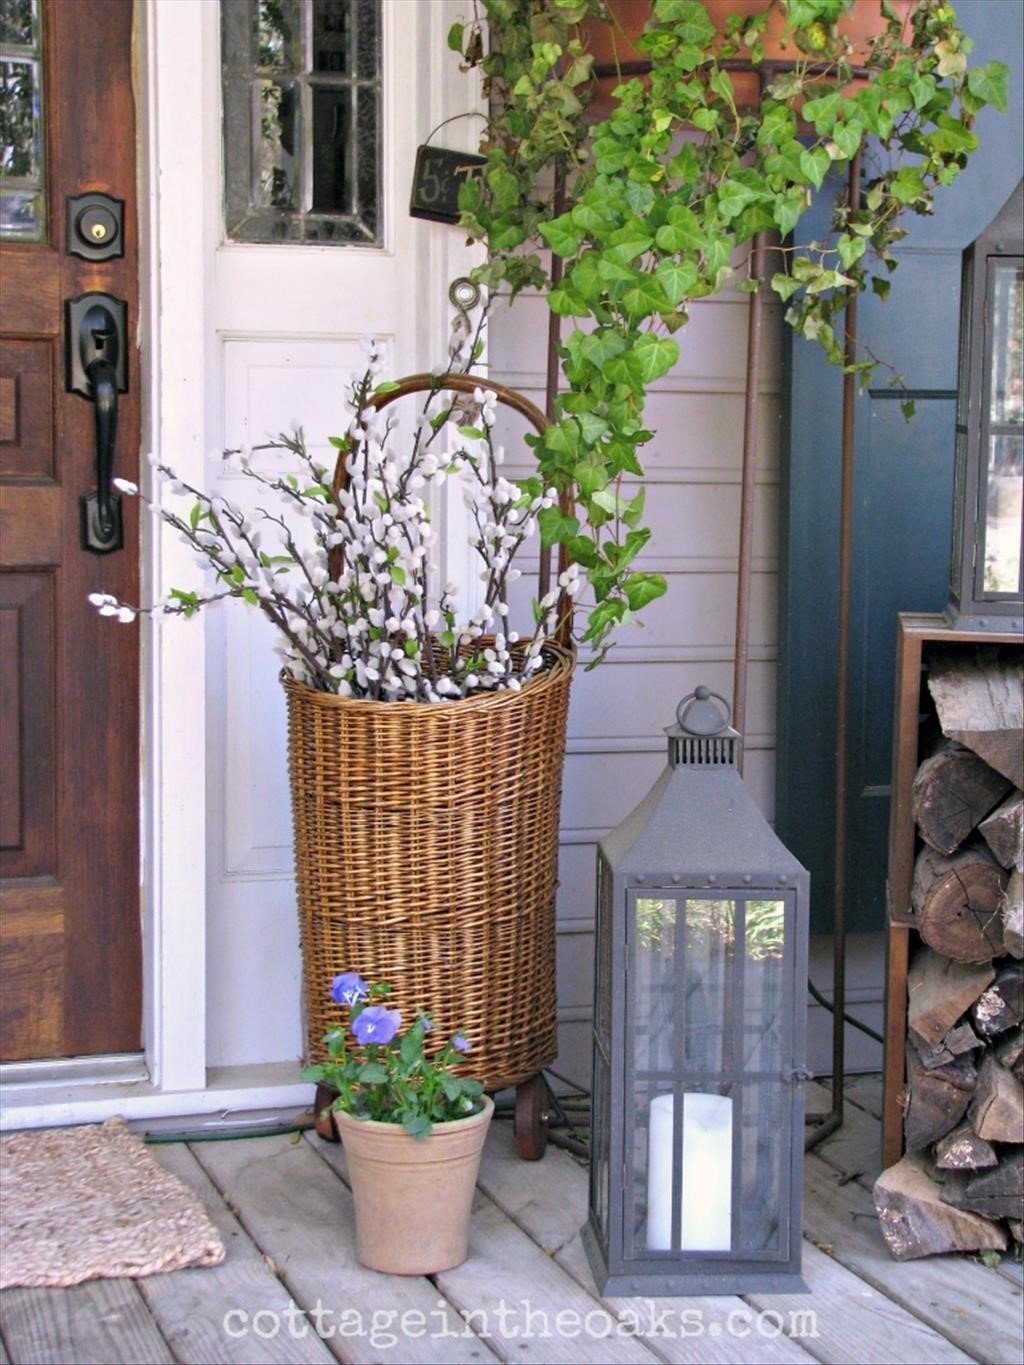 10 Ideal Front Porch Decorating Ideas For Spring appealing front porch decorating ideas for spring hd wallpaper 2021